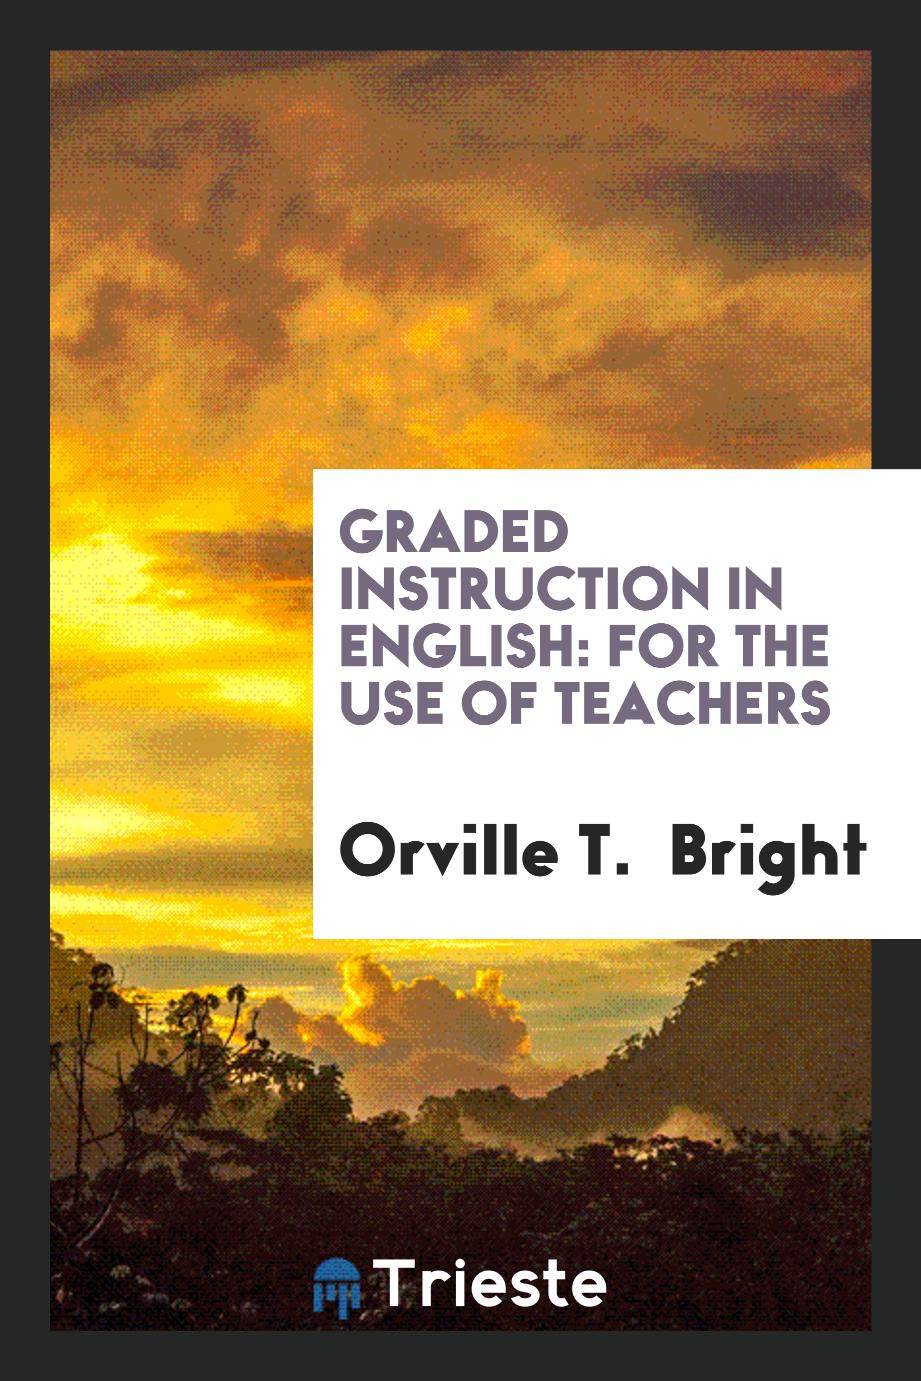 Graded Instruction in English: For the Use of Teachers